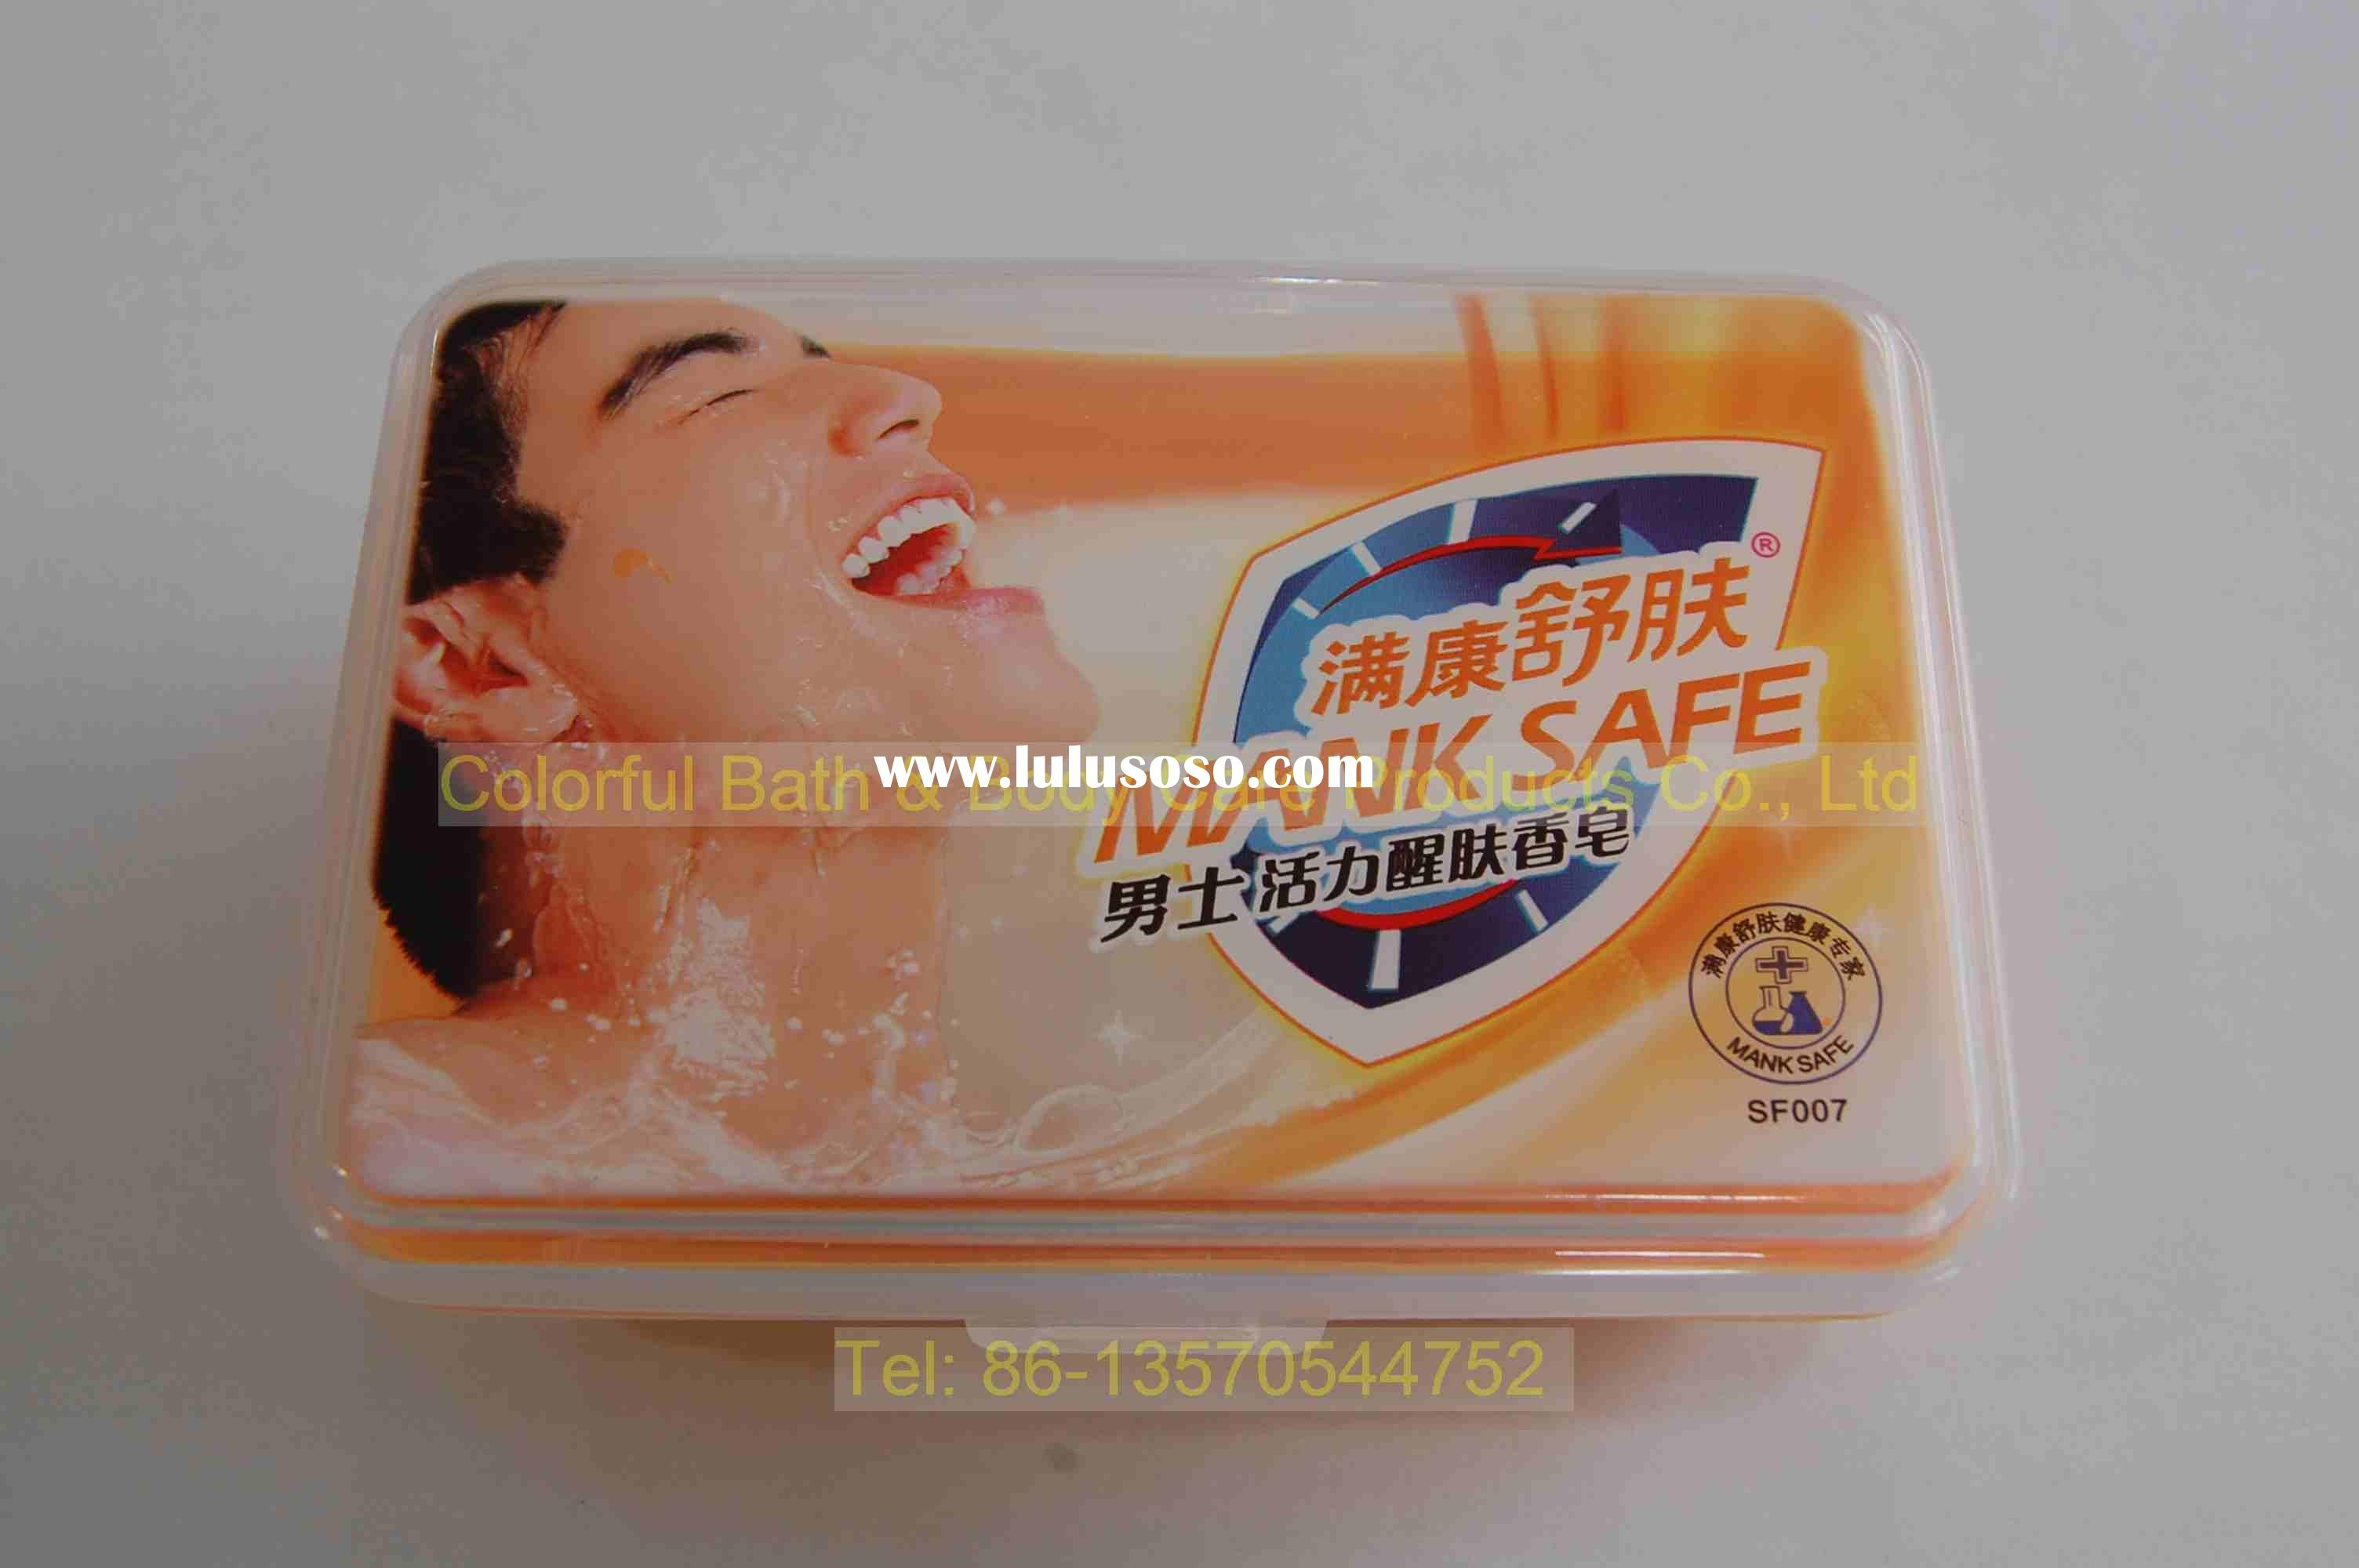 lux soap company profile, lux soap company profile Manufacturers ...